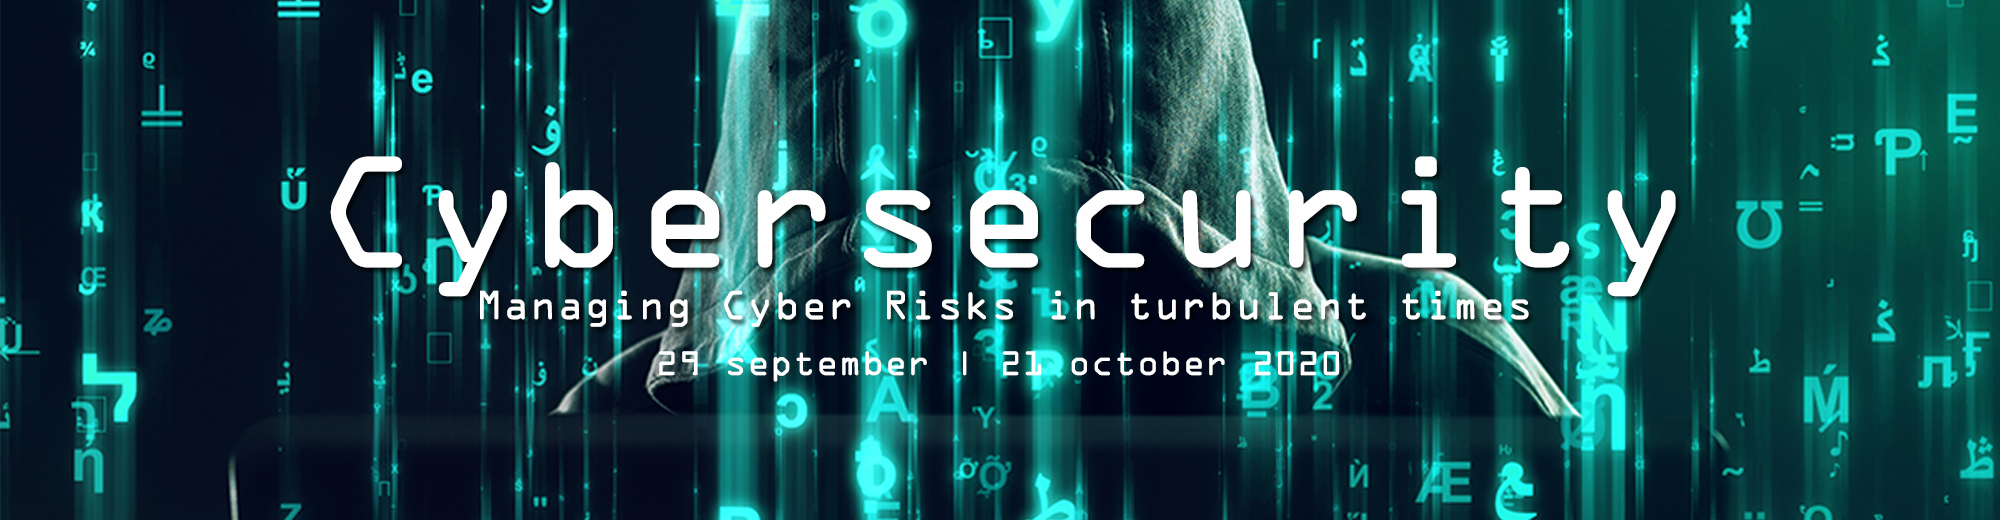 Cybersecurity: Managing Cyber Risks in turbulent times